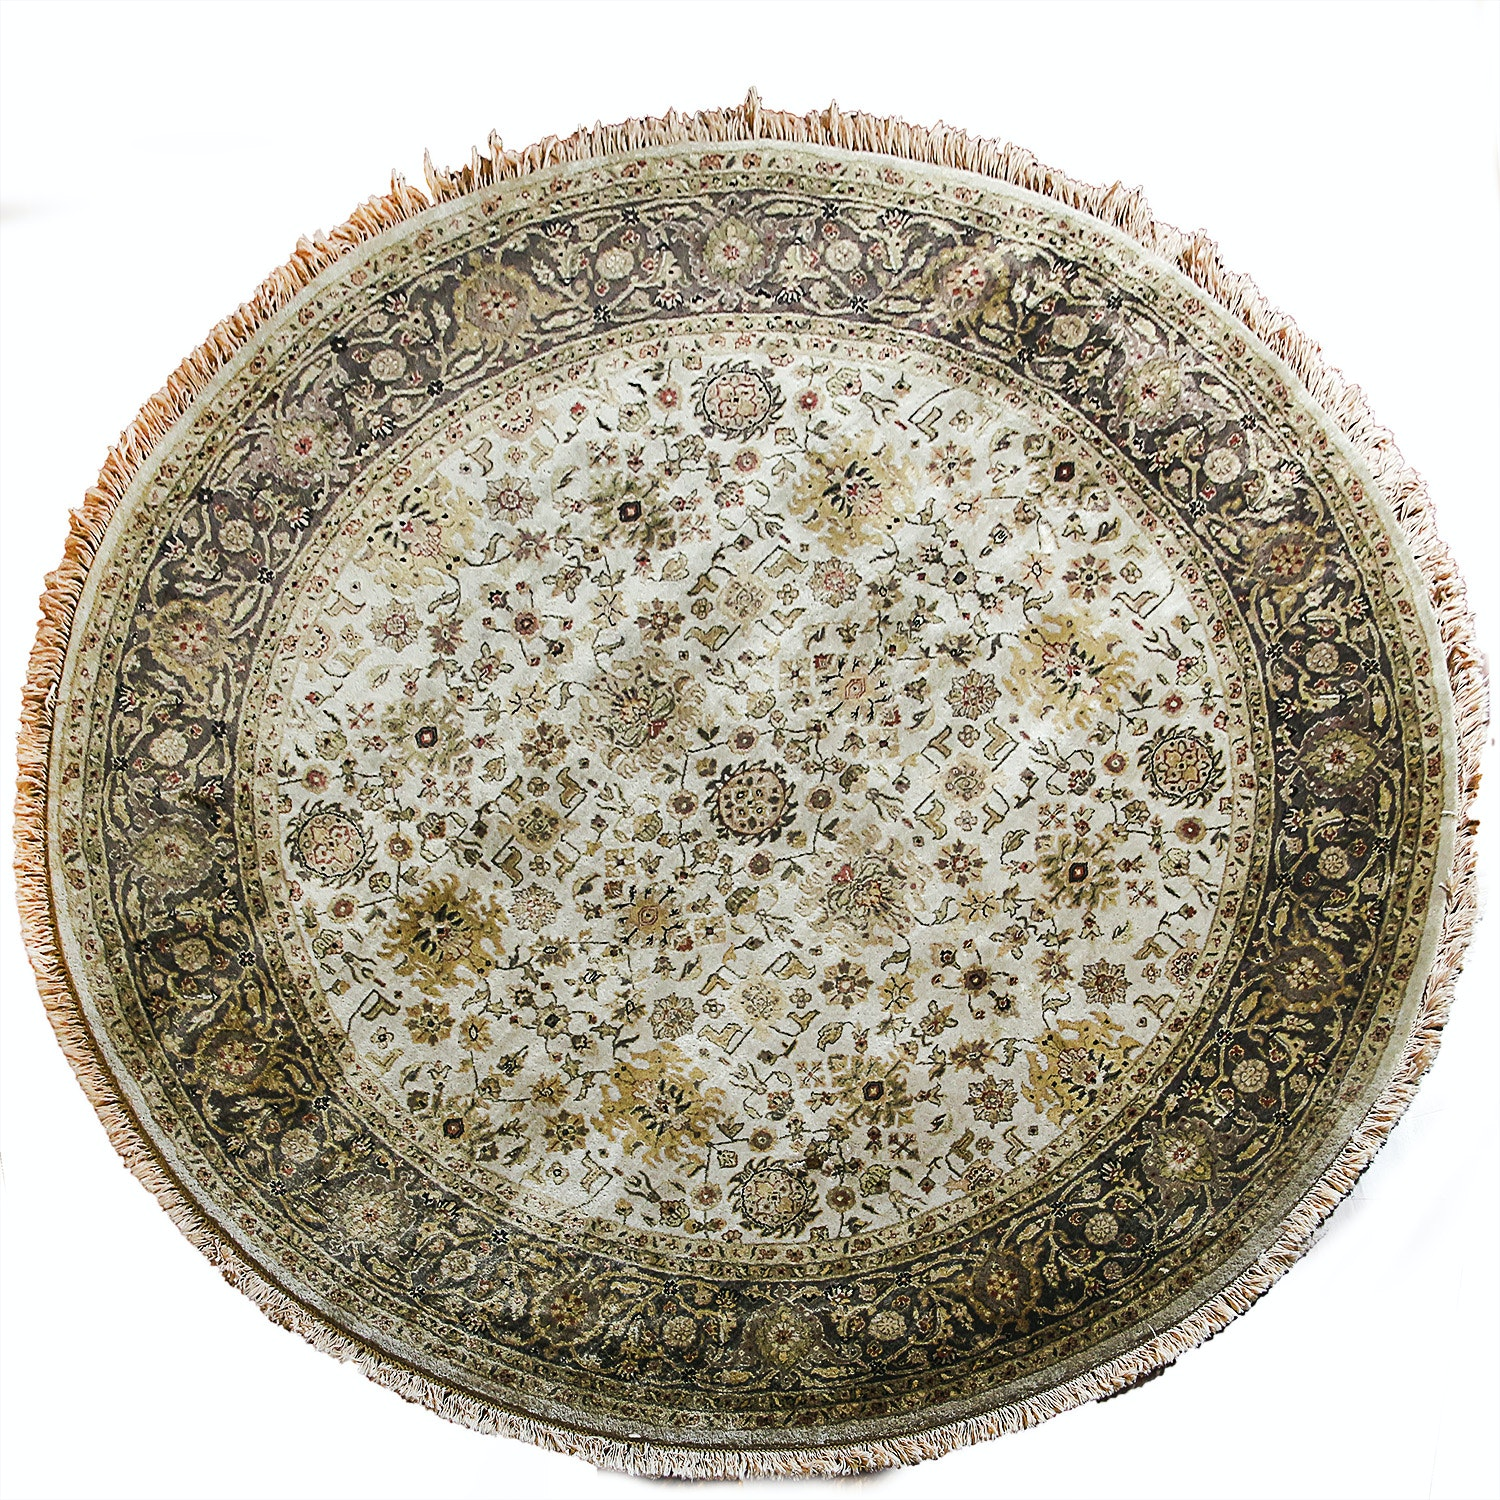 Hand-Knotted Indian Round Wool Area Rug